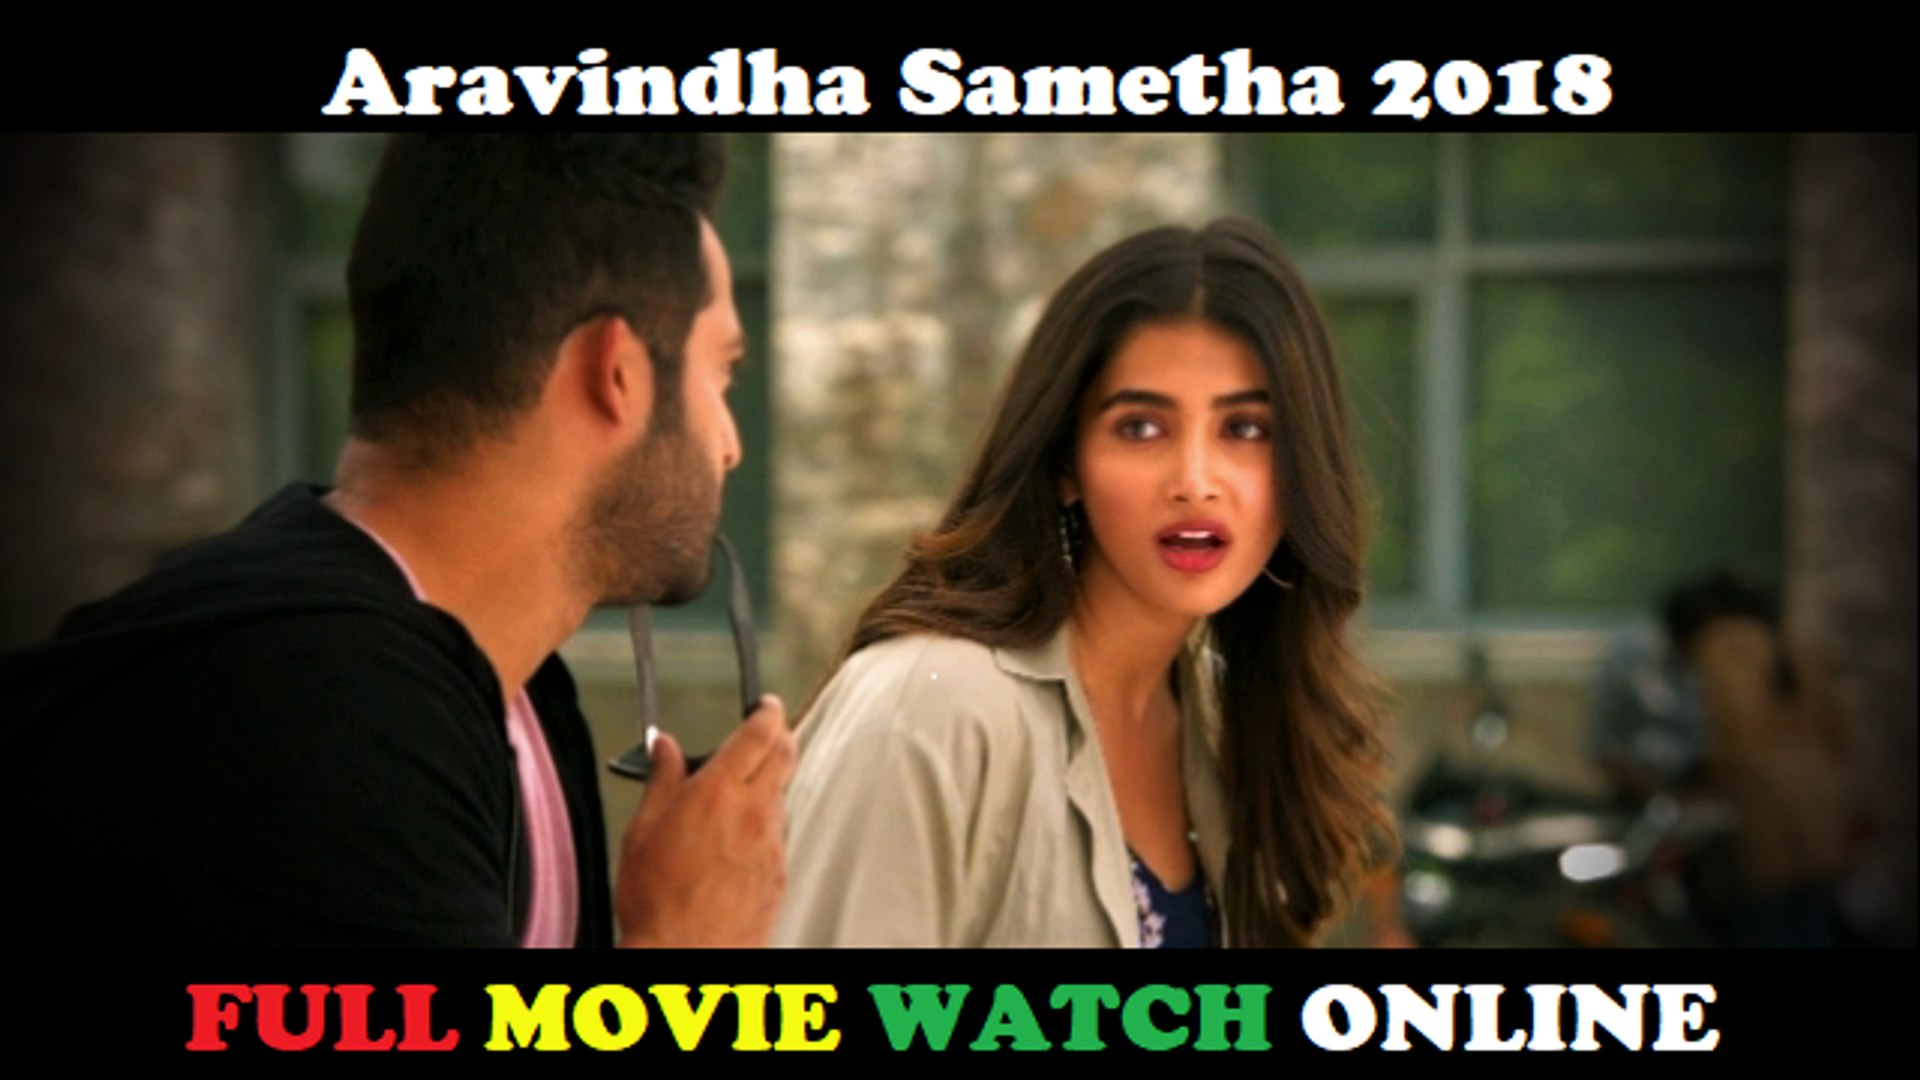 Aravindha Sametha 2018 Movie Watch Online